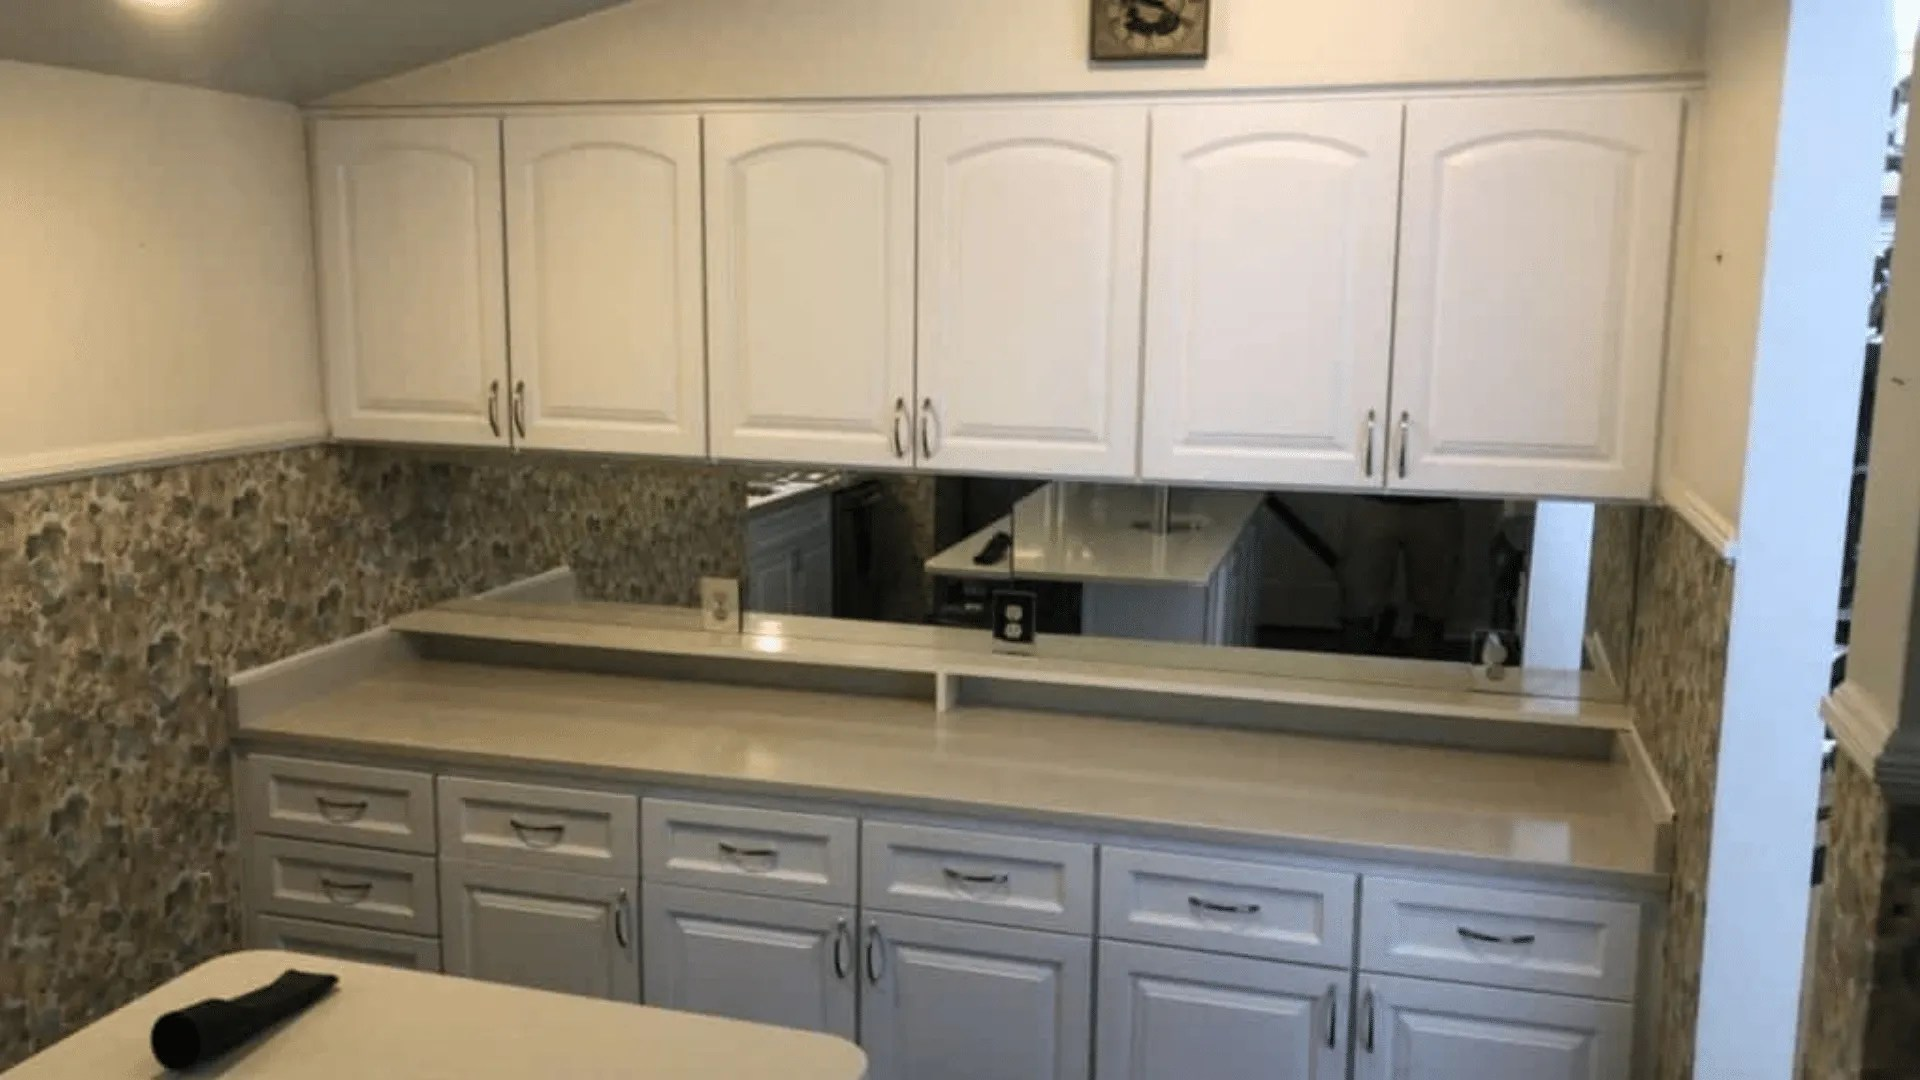 Mid Sized Kitchen Cabinet Reface In Betton Woods 15 400